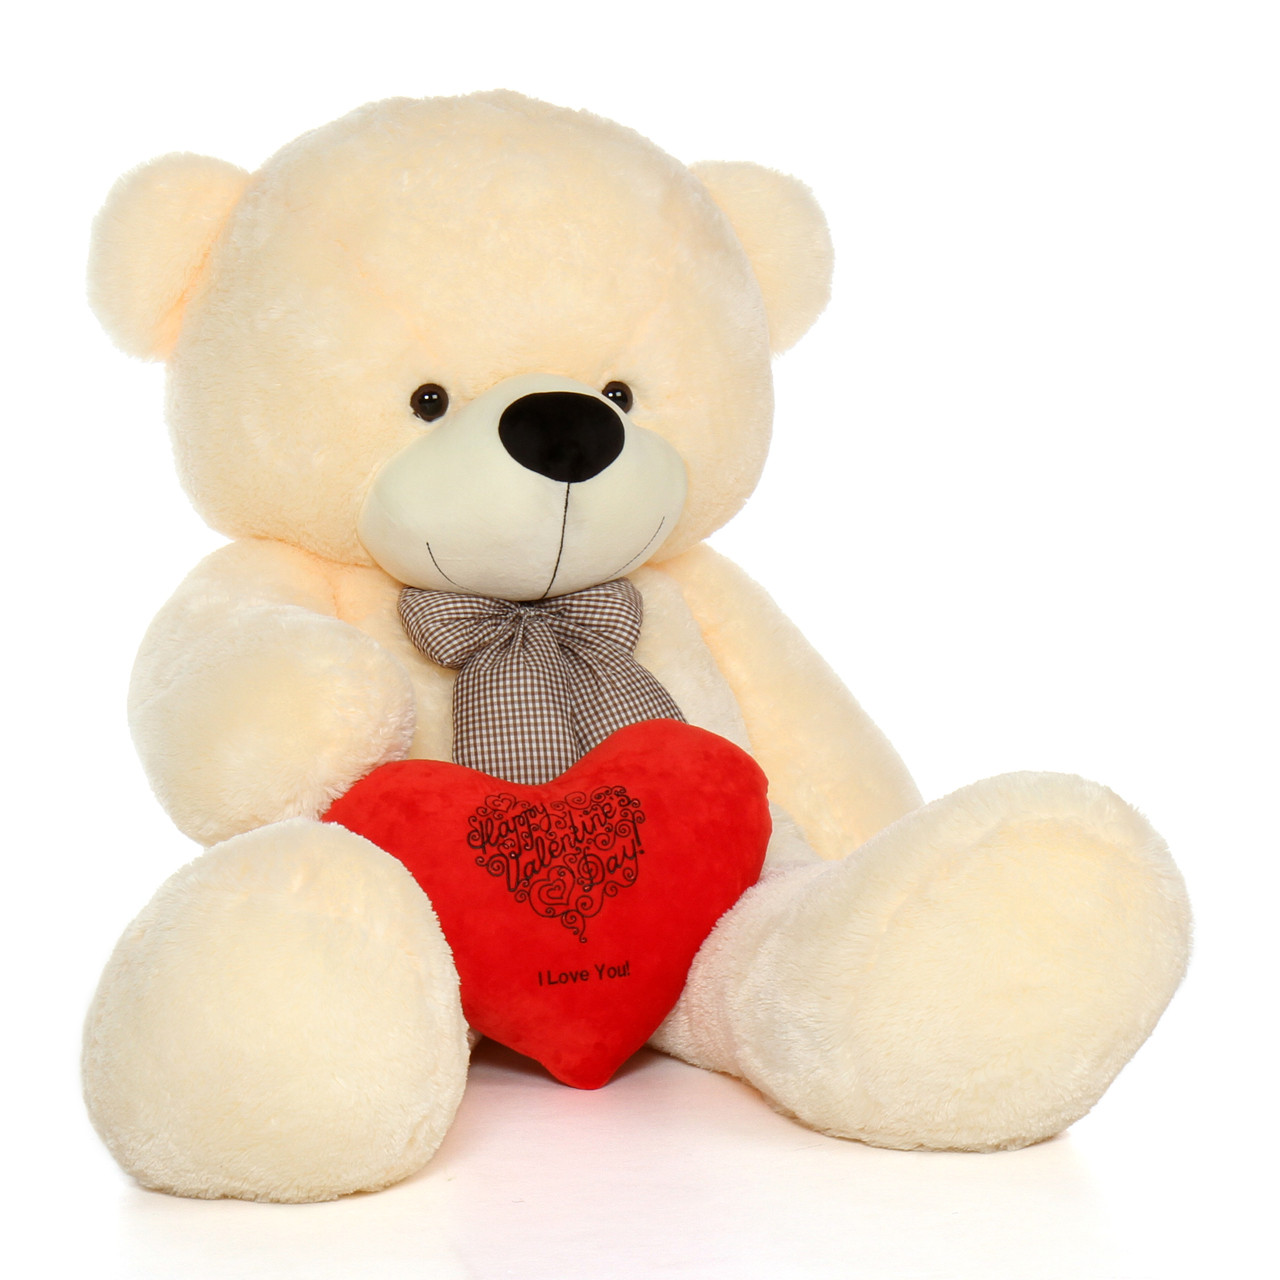 72in Vanilla Giant Teddy Bear w Red Heart Pillow